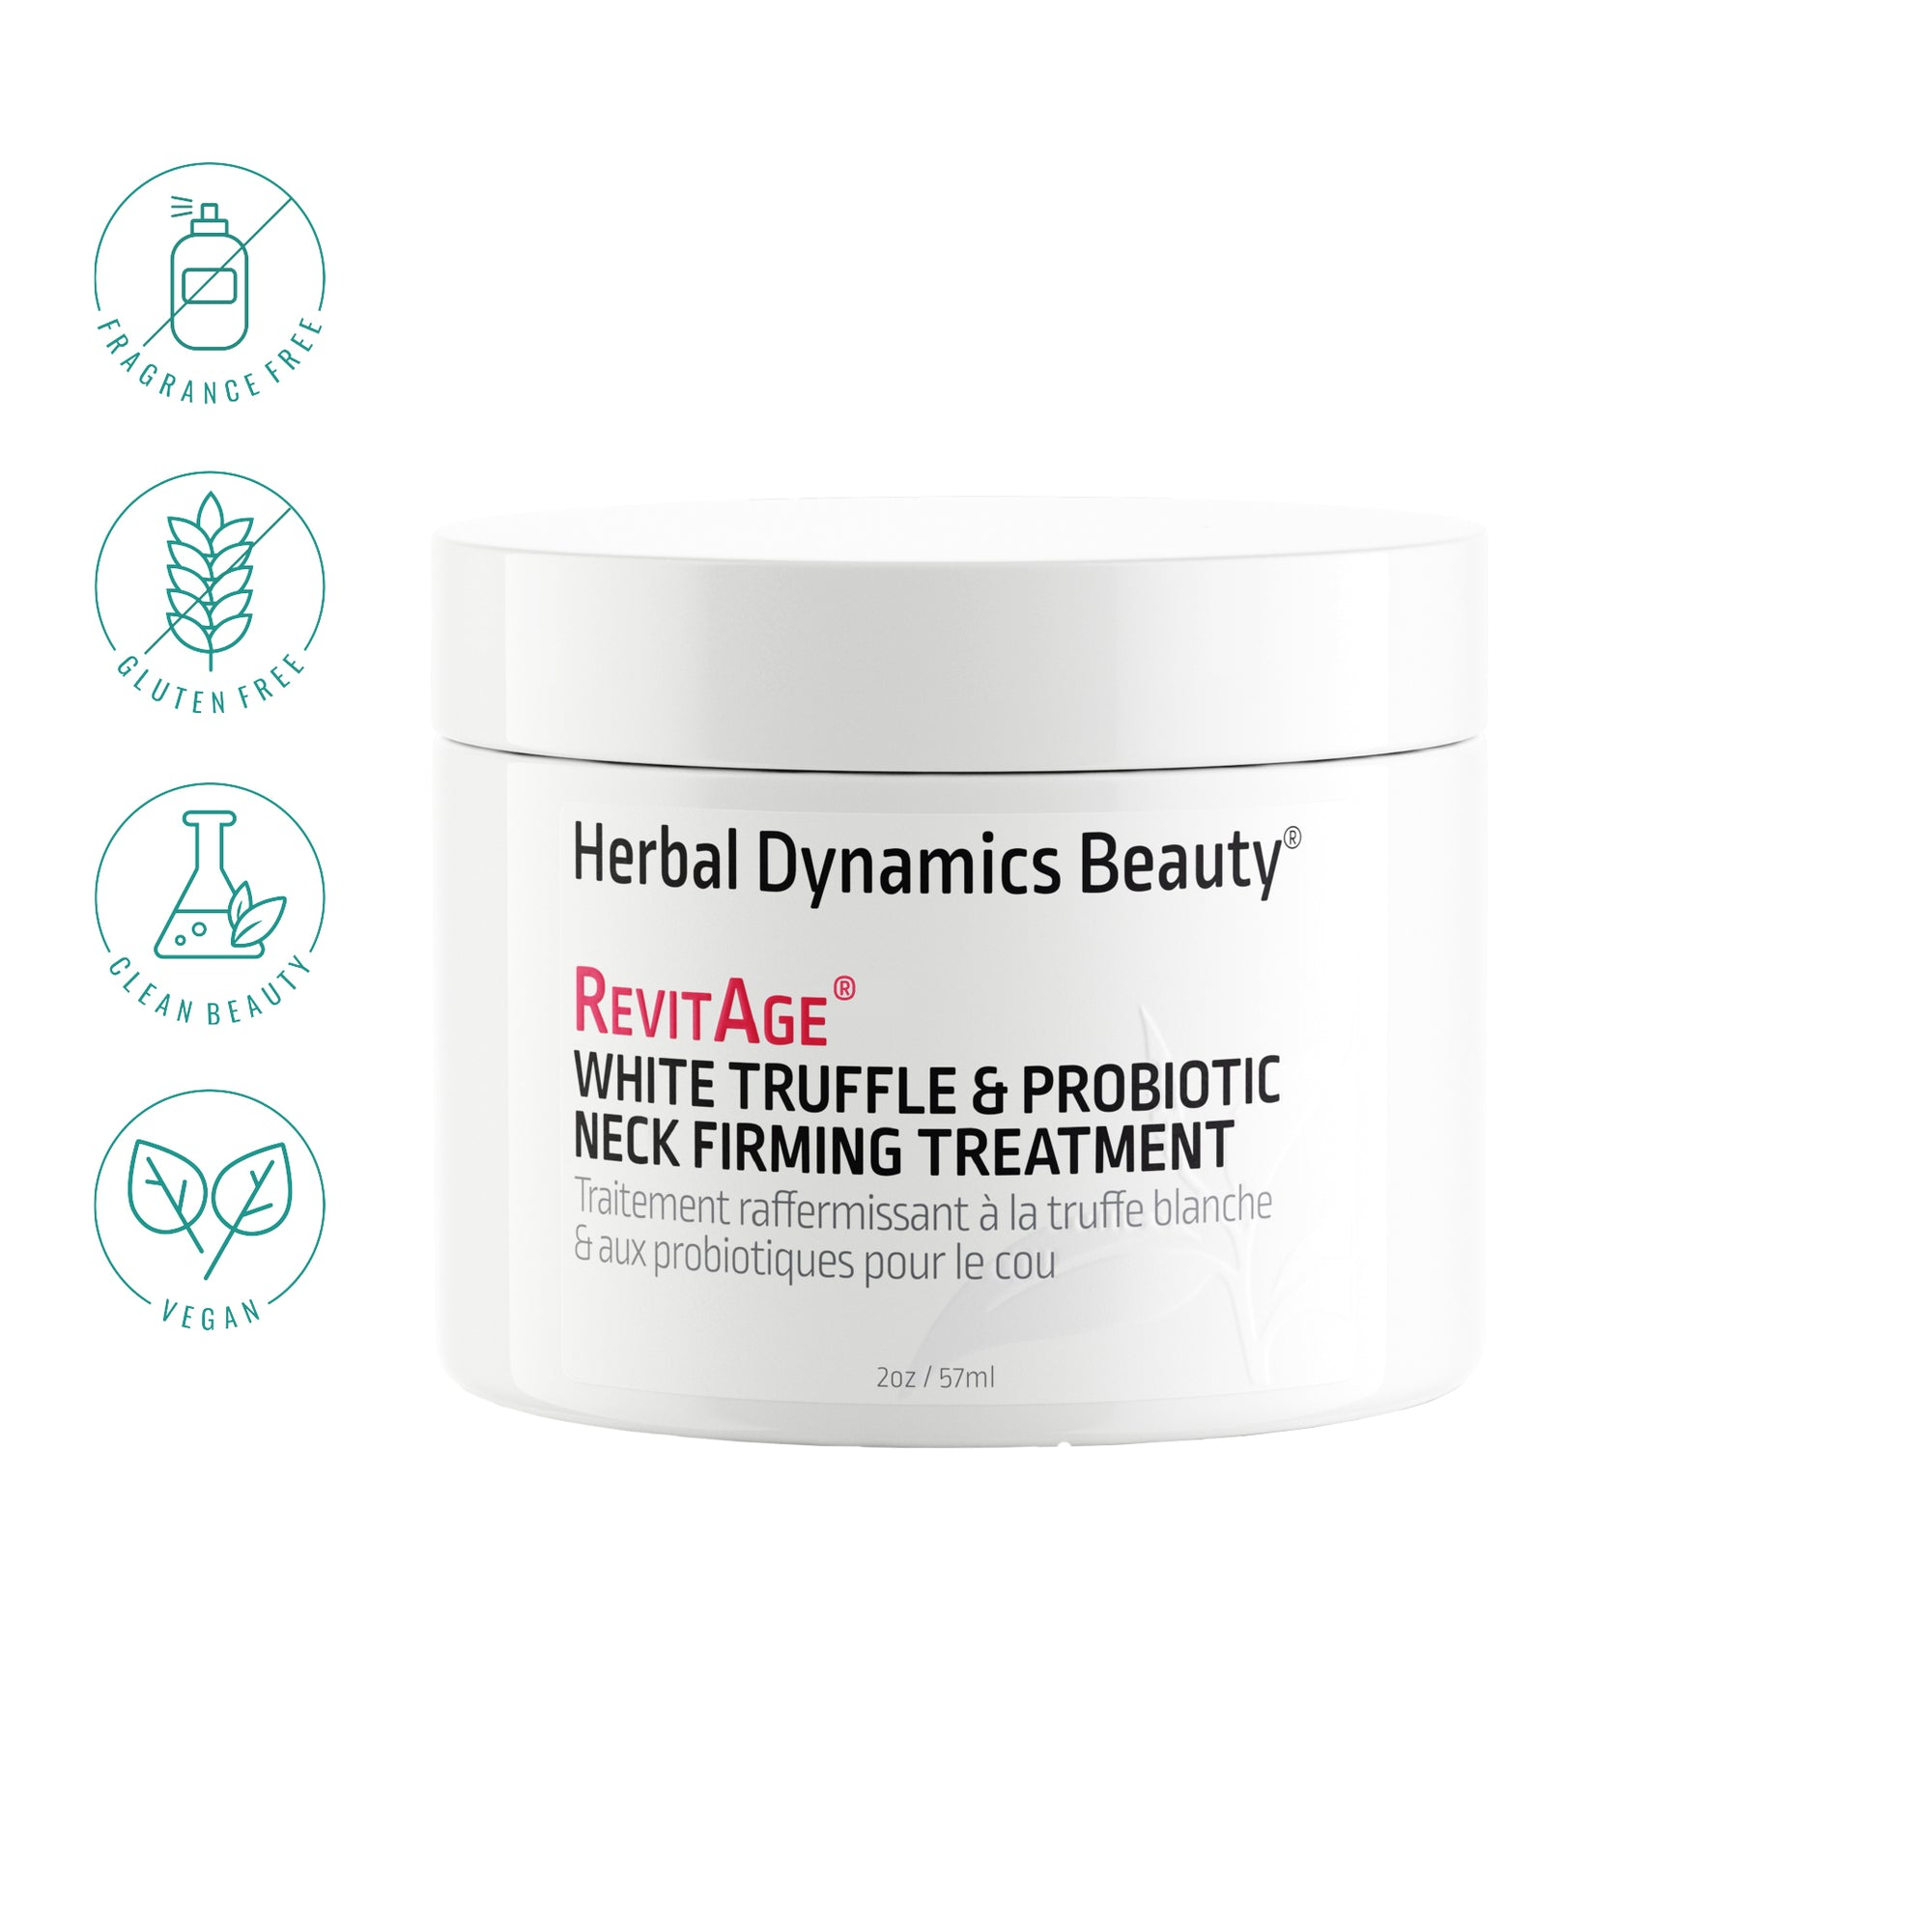 Herbal Dynamics Beauty - White Truffle & Probiotic Neck Firming Treatment